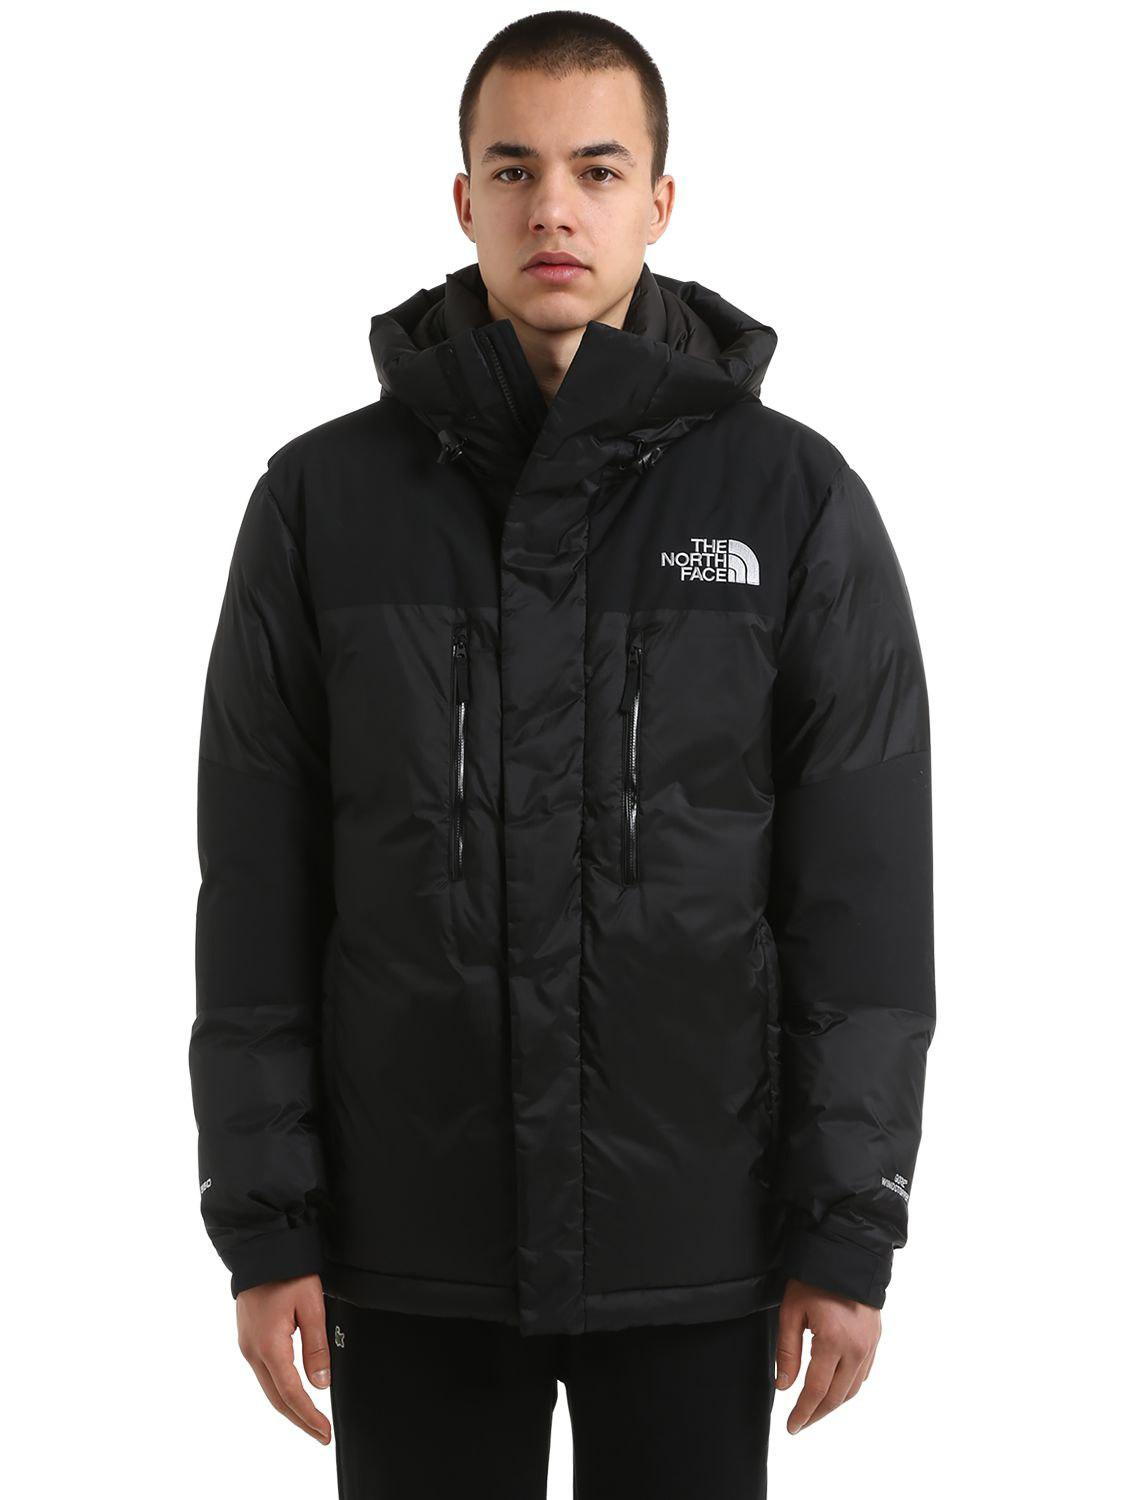 34332722a The North Face Black Himalayan Windstopper Down Jacket for men